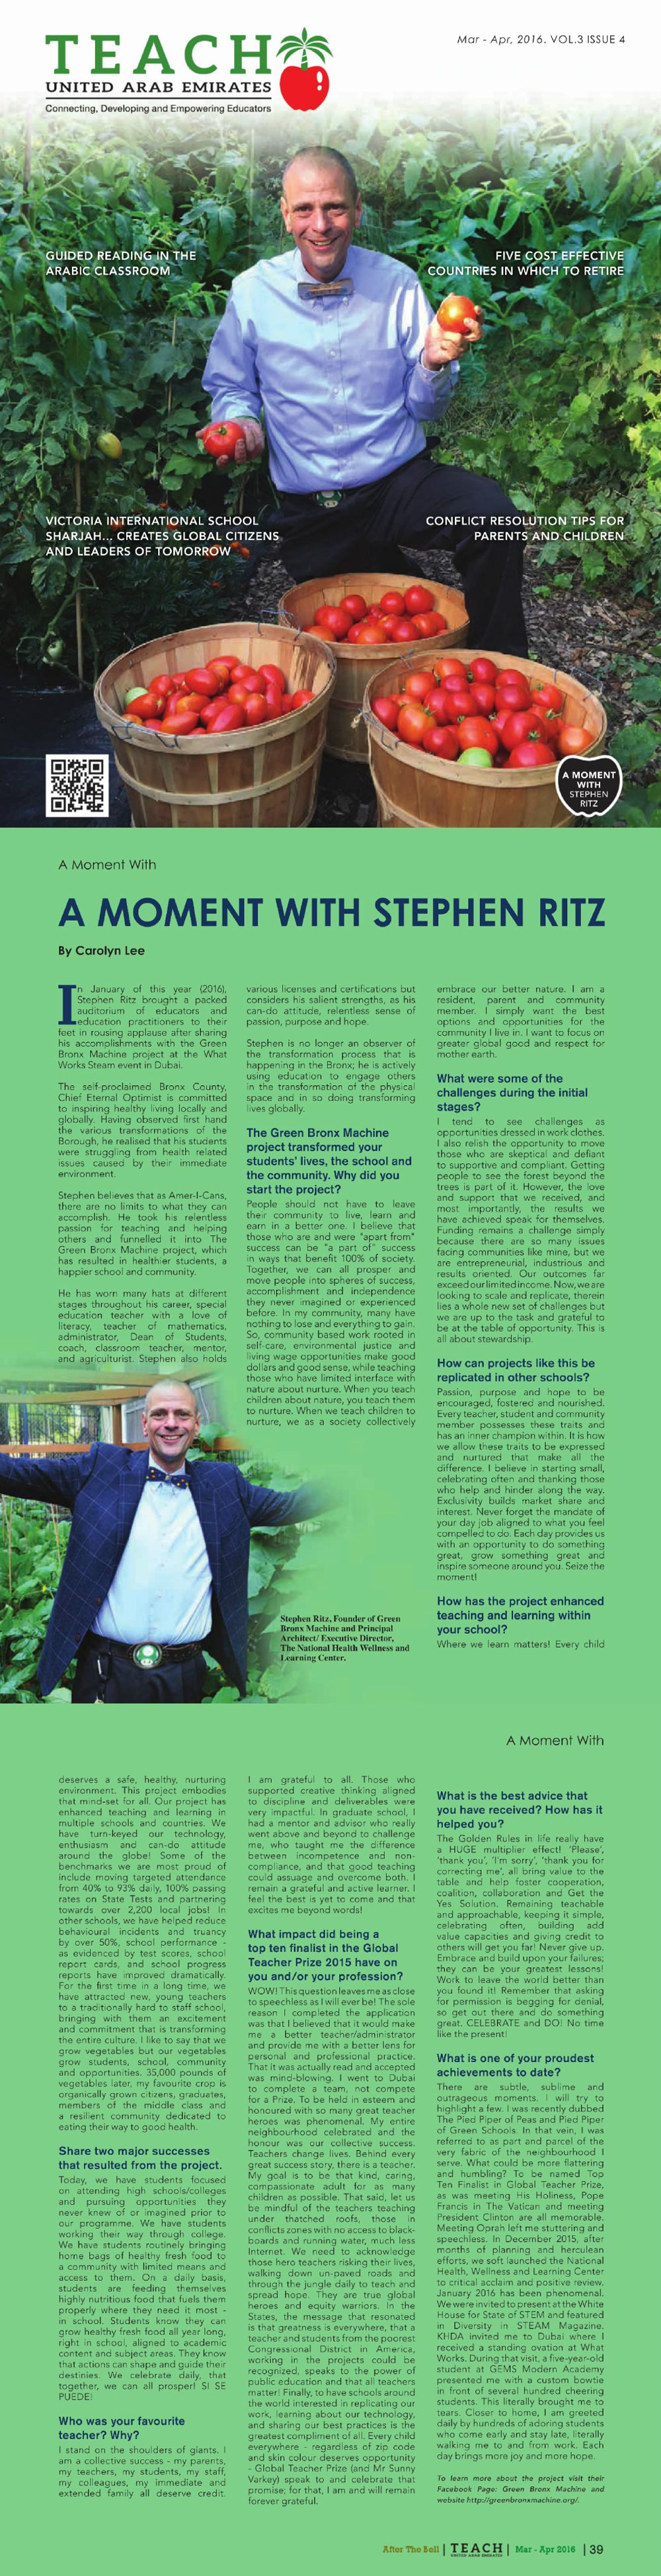 Teach UAE Magazine - A Moment with Stephen Ritz